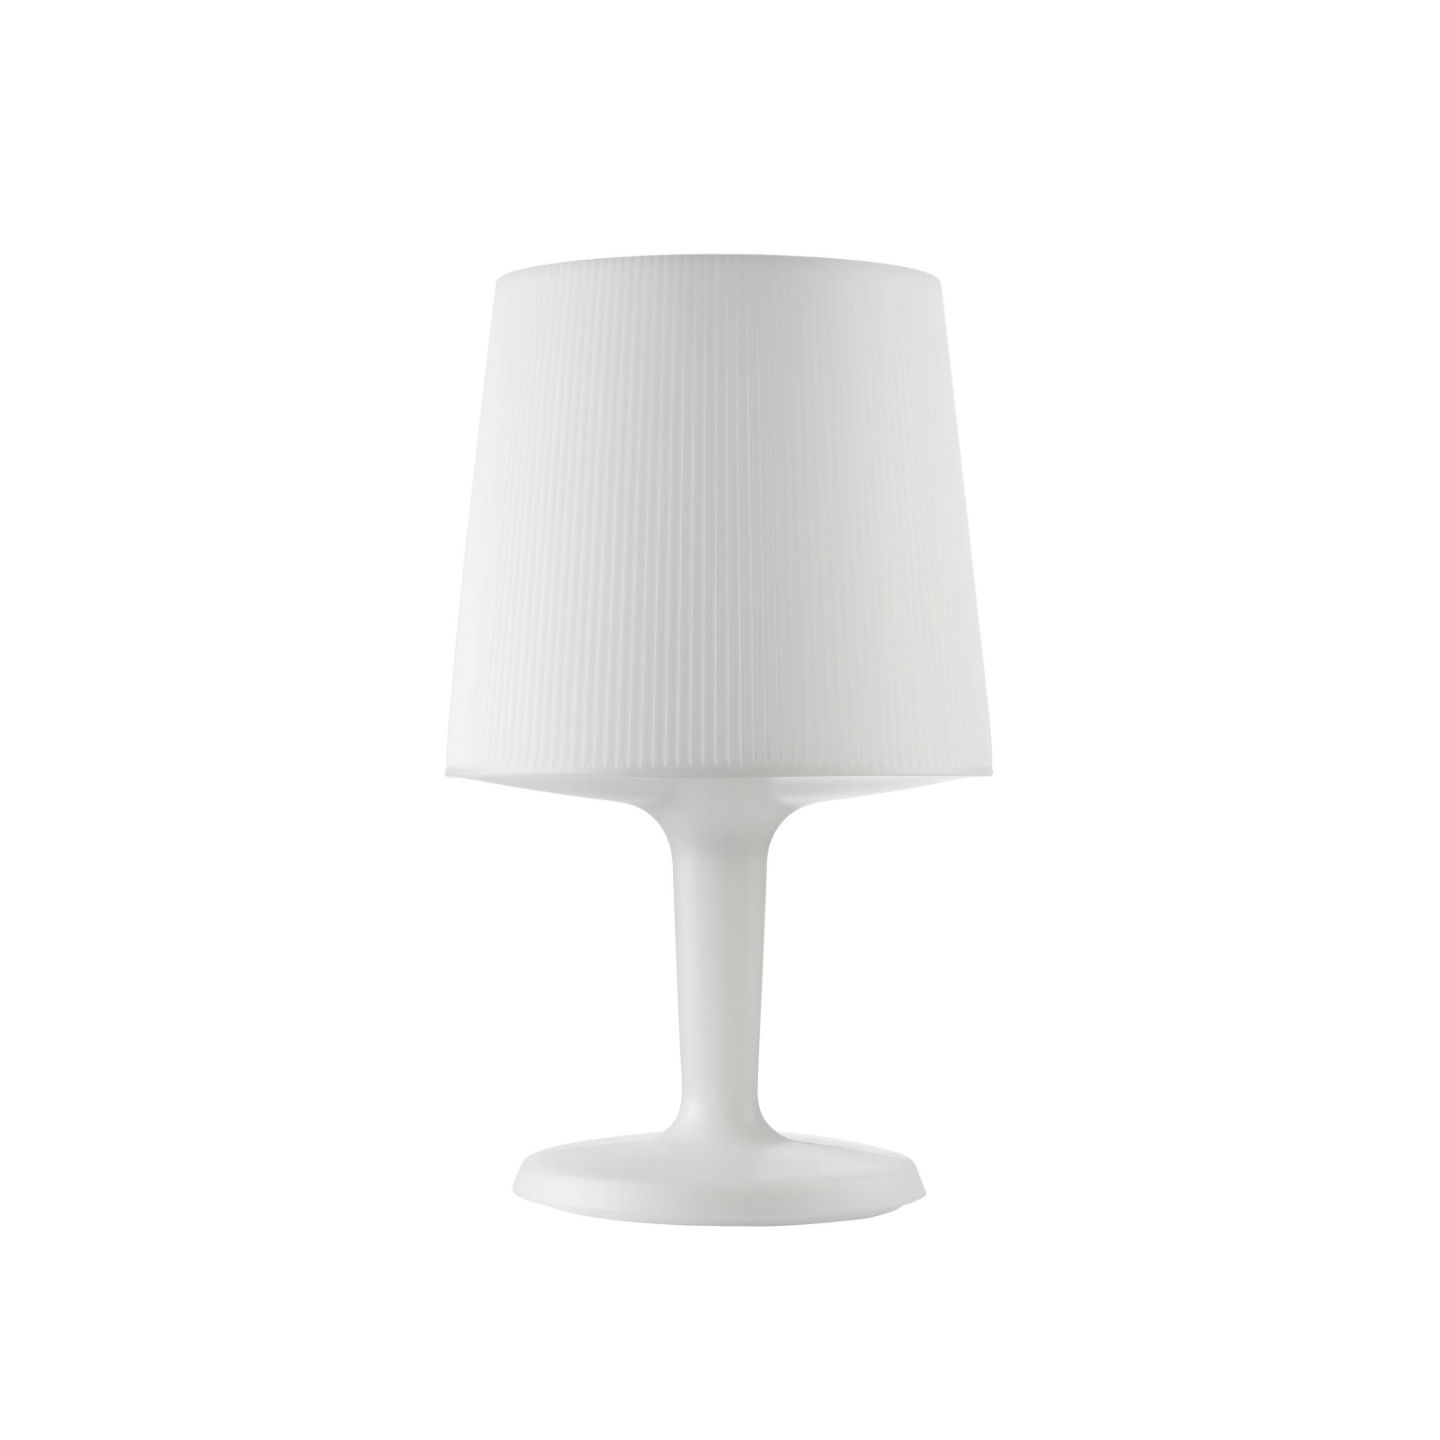 Inout Table Lamp Small of Outdoor white